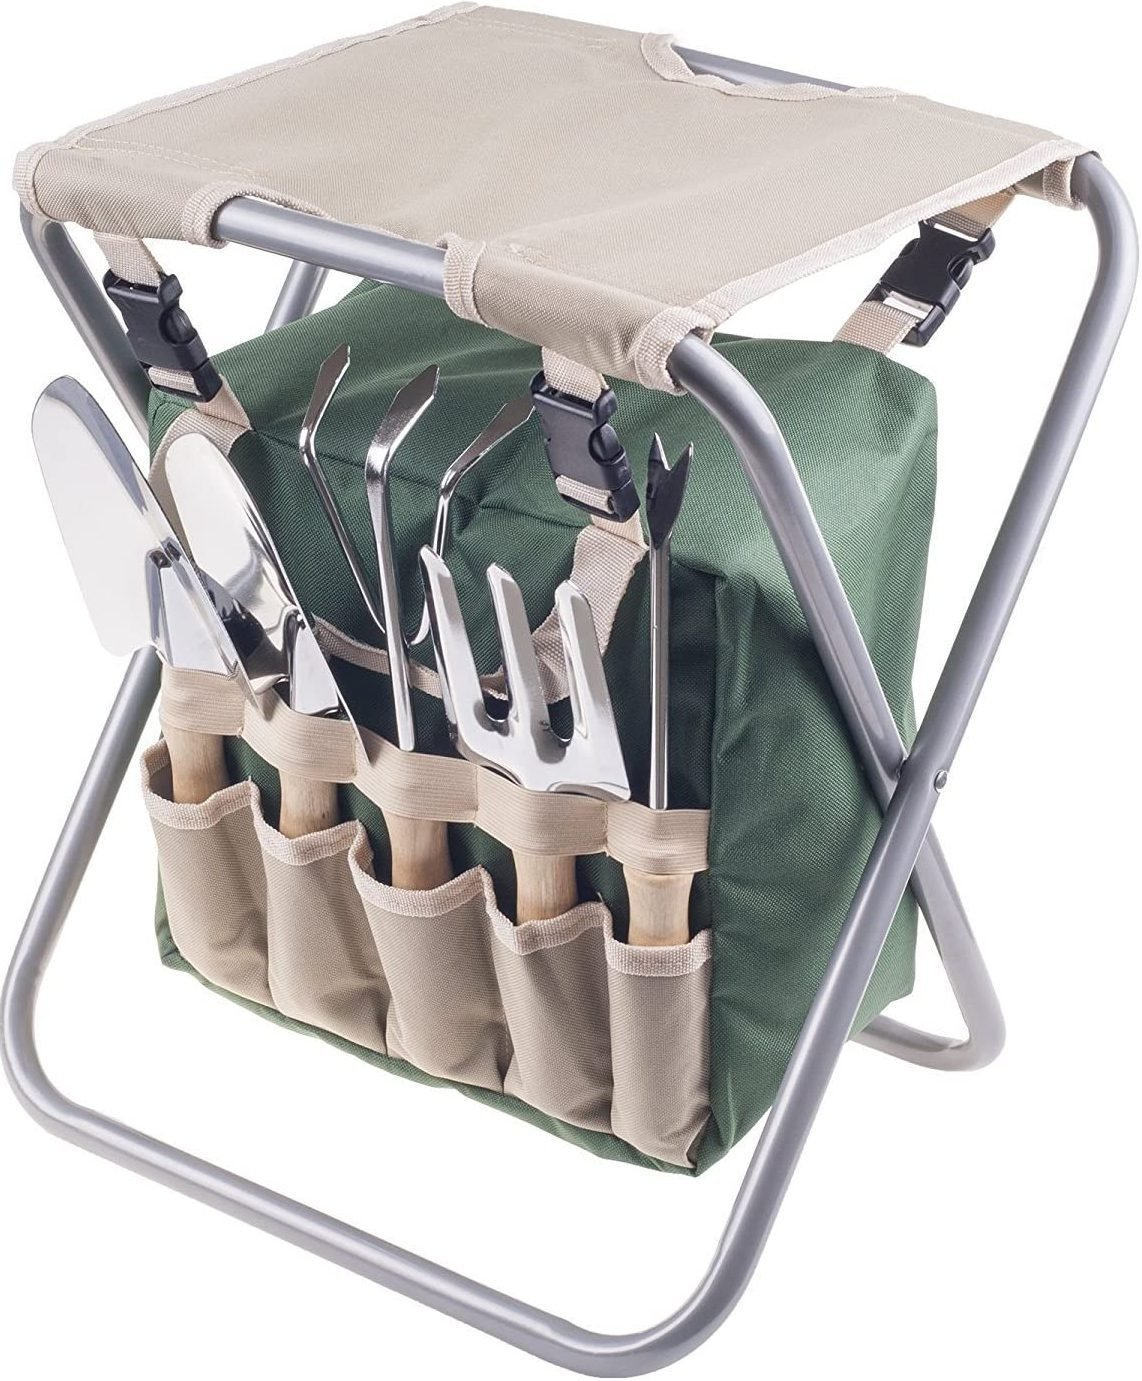 All In One Garden Tool Kit